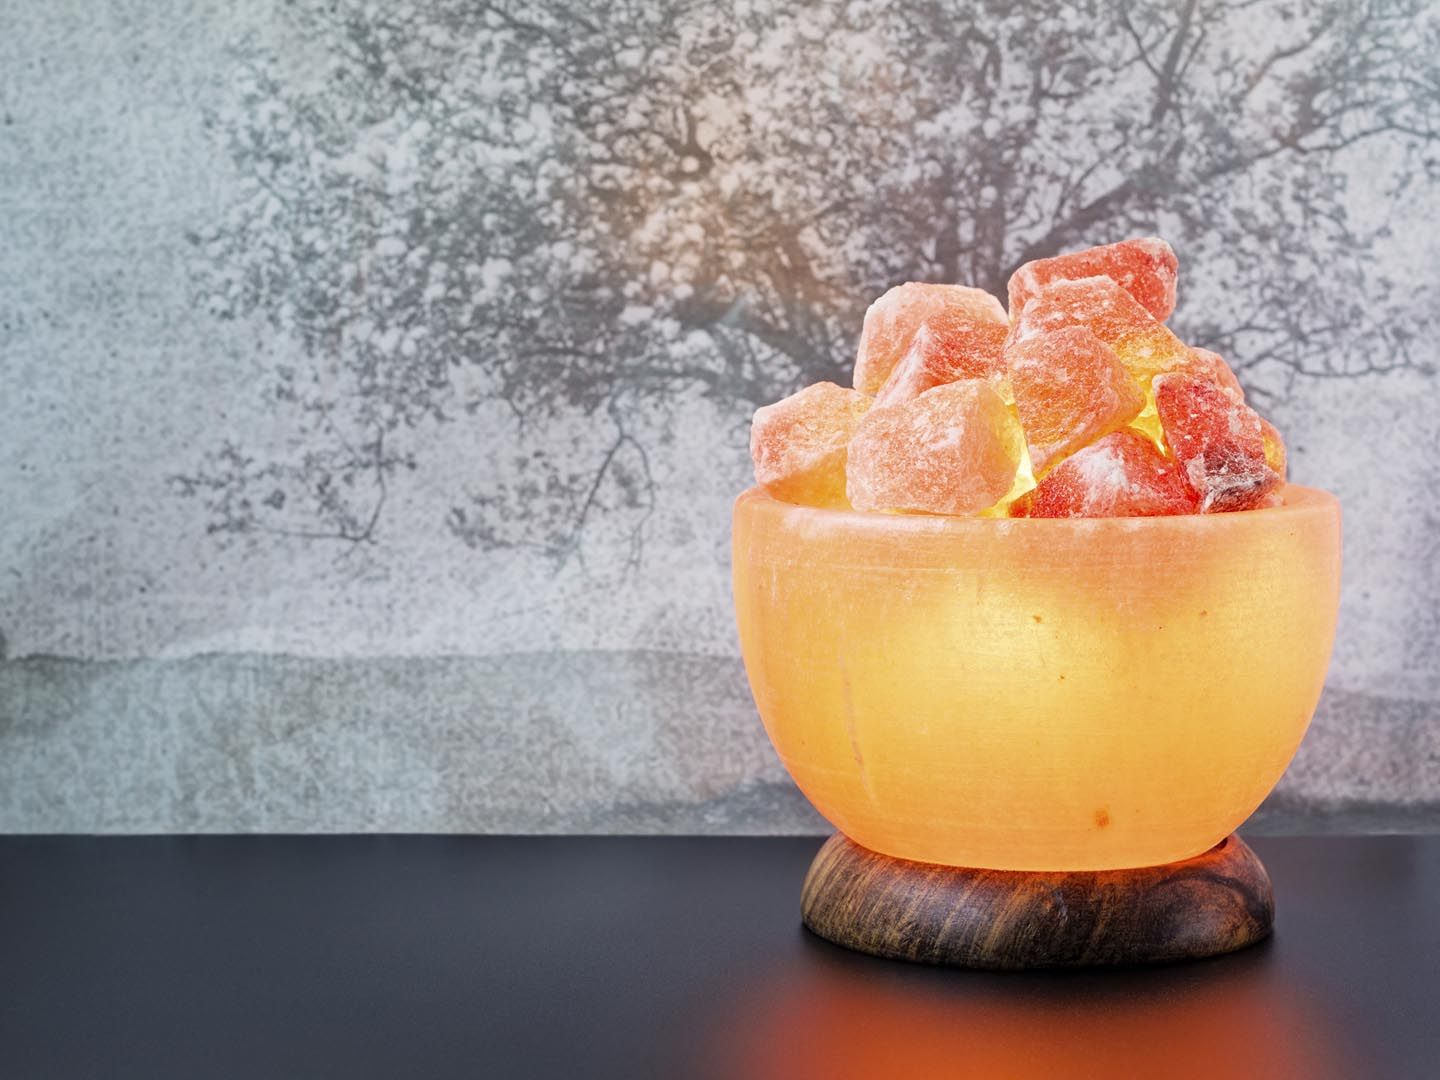 Salt lamps health benefits - What Do You Think Of Himalayan Salt Lamps I Ve Heard That They Provide